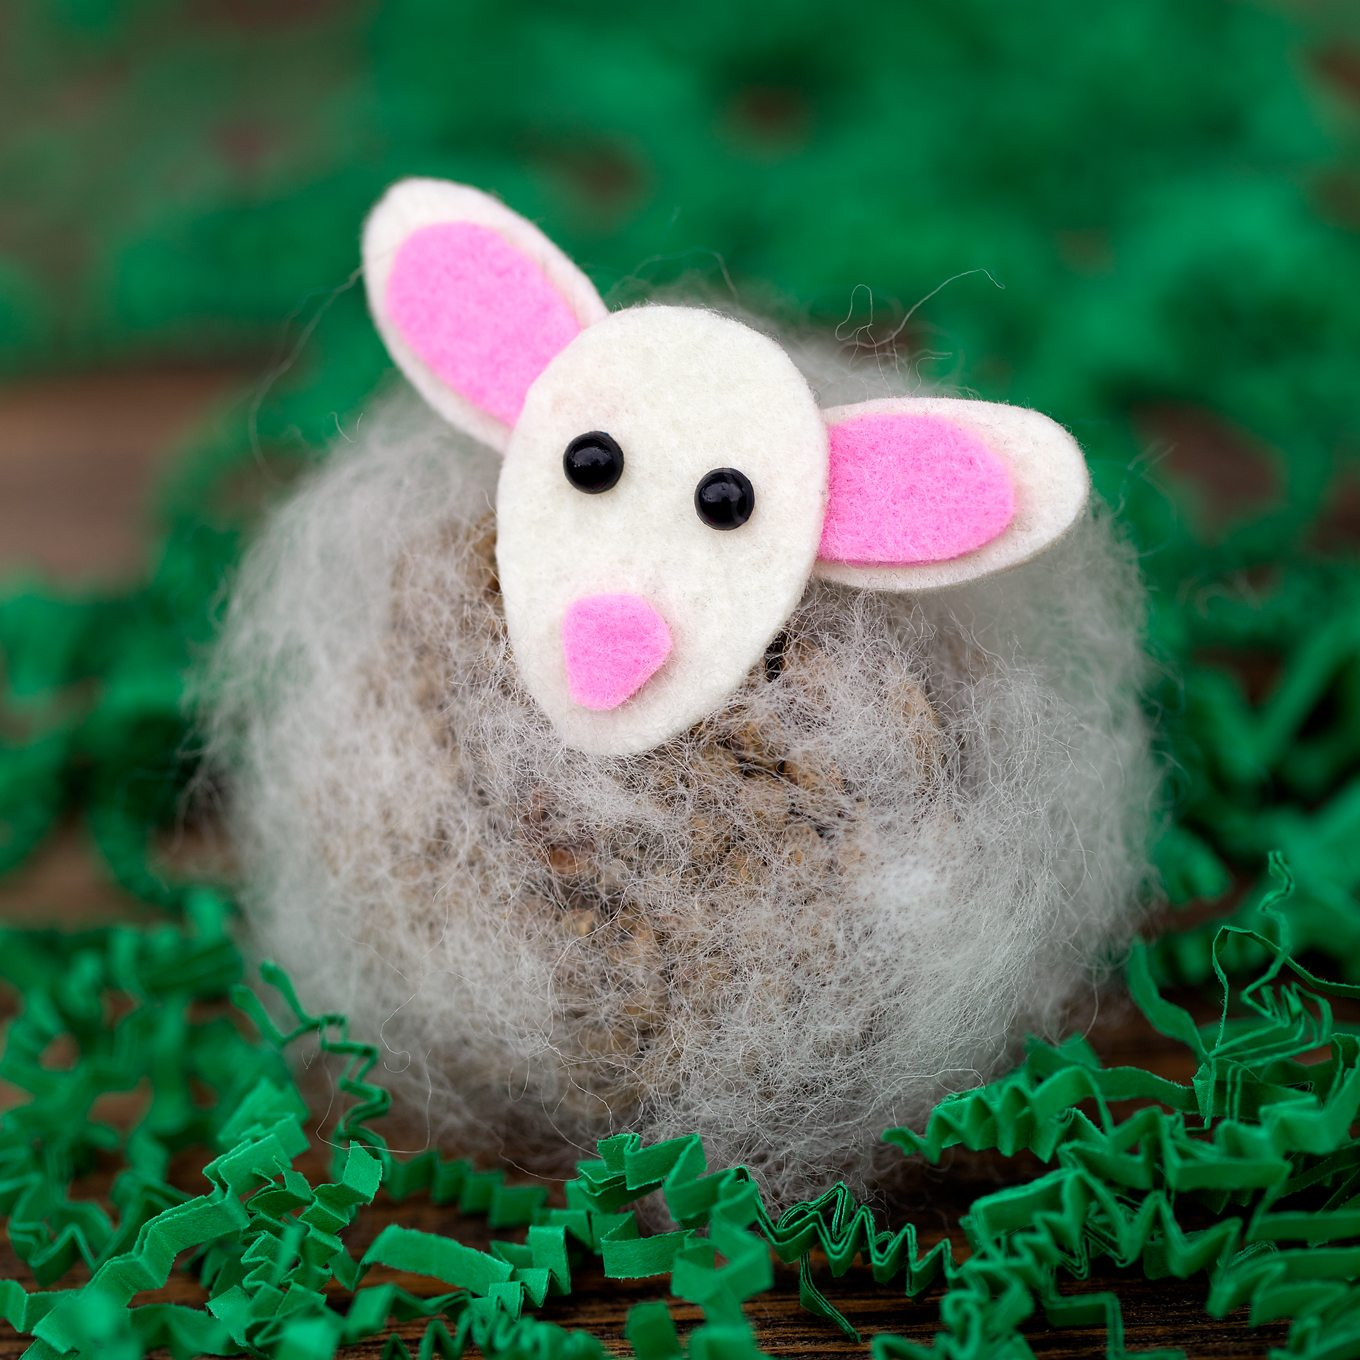 Pine Cone Lambs are a creative, easy, and fun spring nature craft for kids. Made with pine cones, wool, and kid-friendly craft supplies!